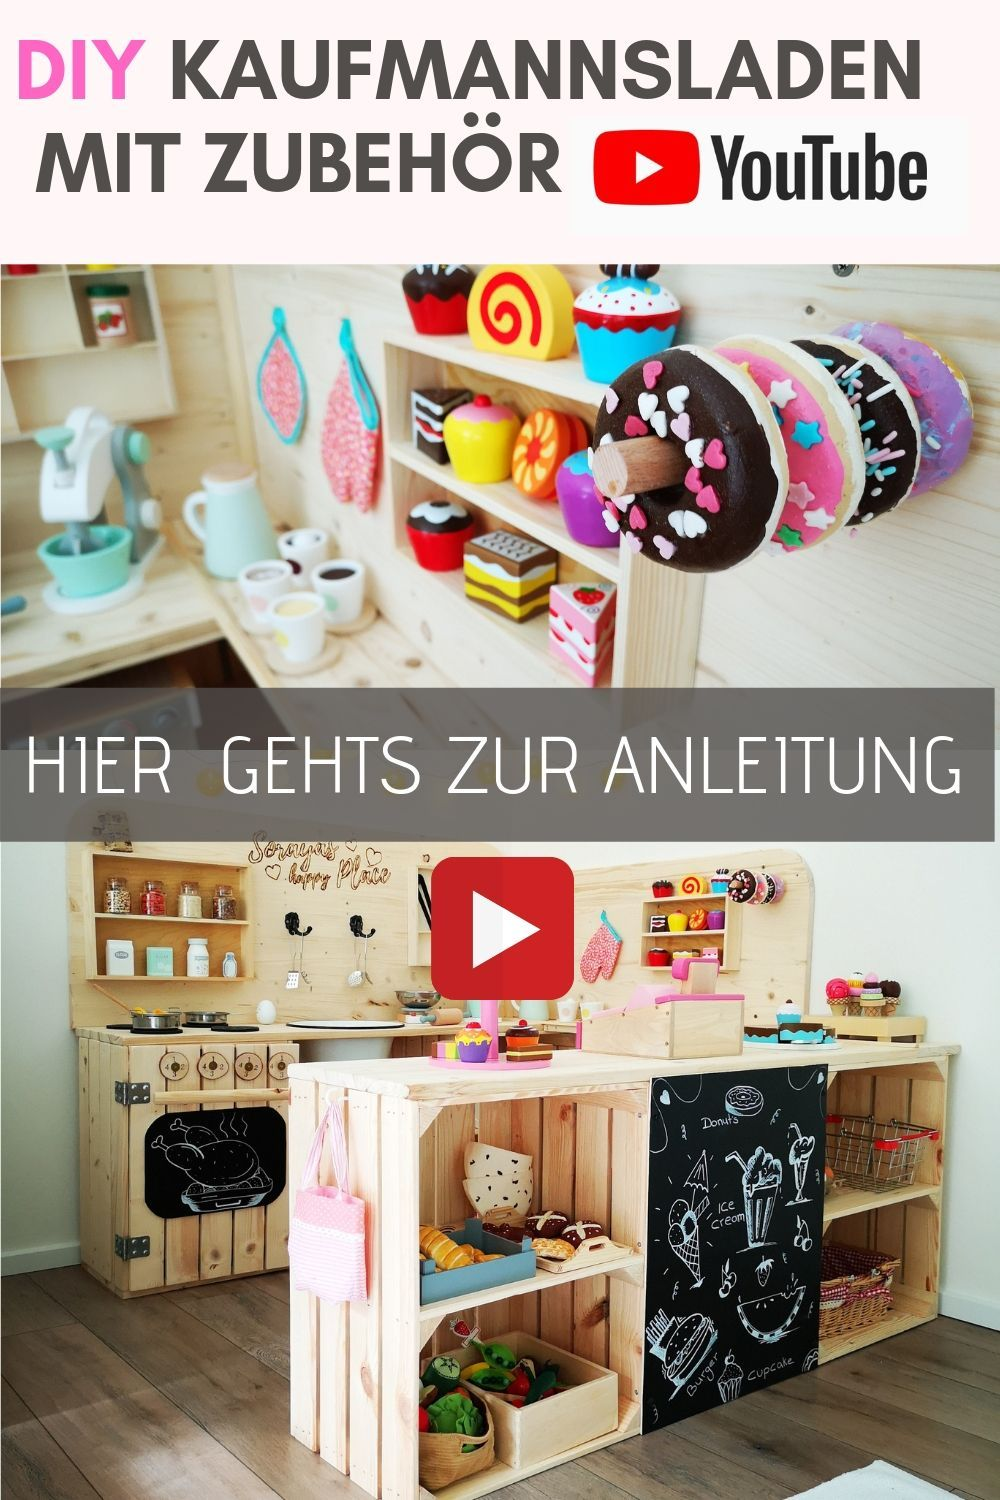 Photo of DIY shop with accessories – shop – play kitchen – children's kitchen made of wood – fruit crate furniture